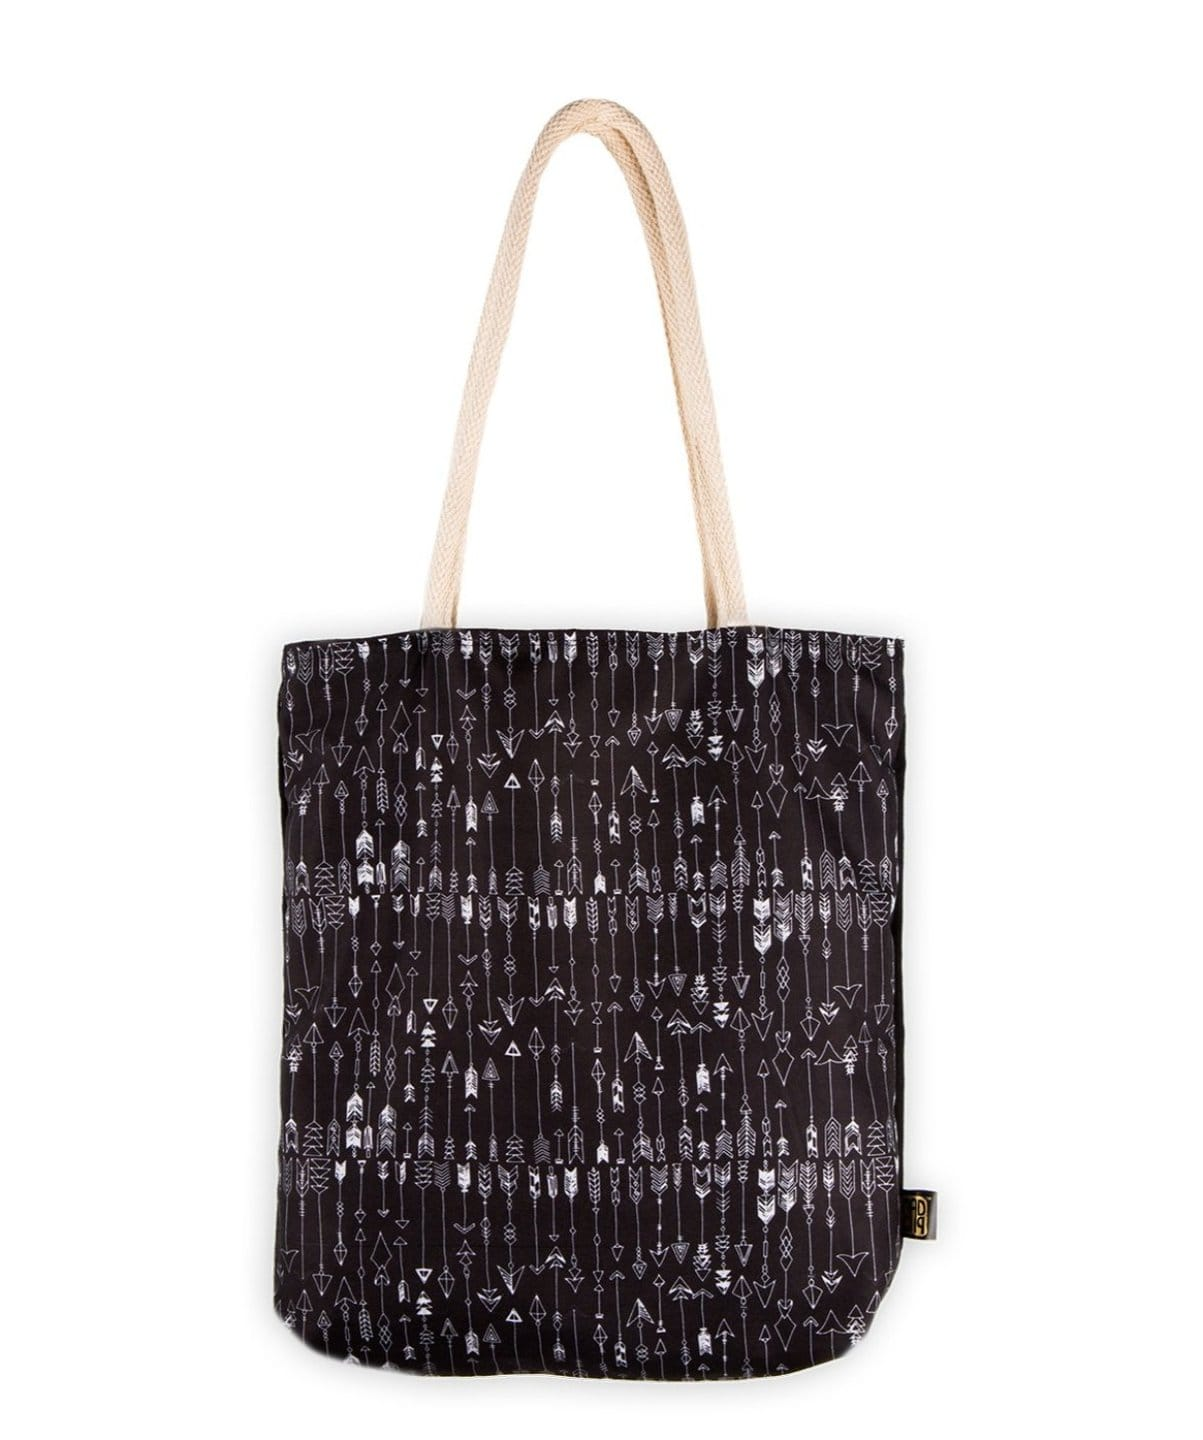 Bohemian Tote Bag - Uptownie